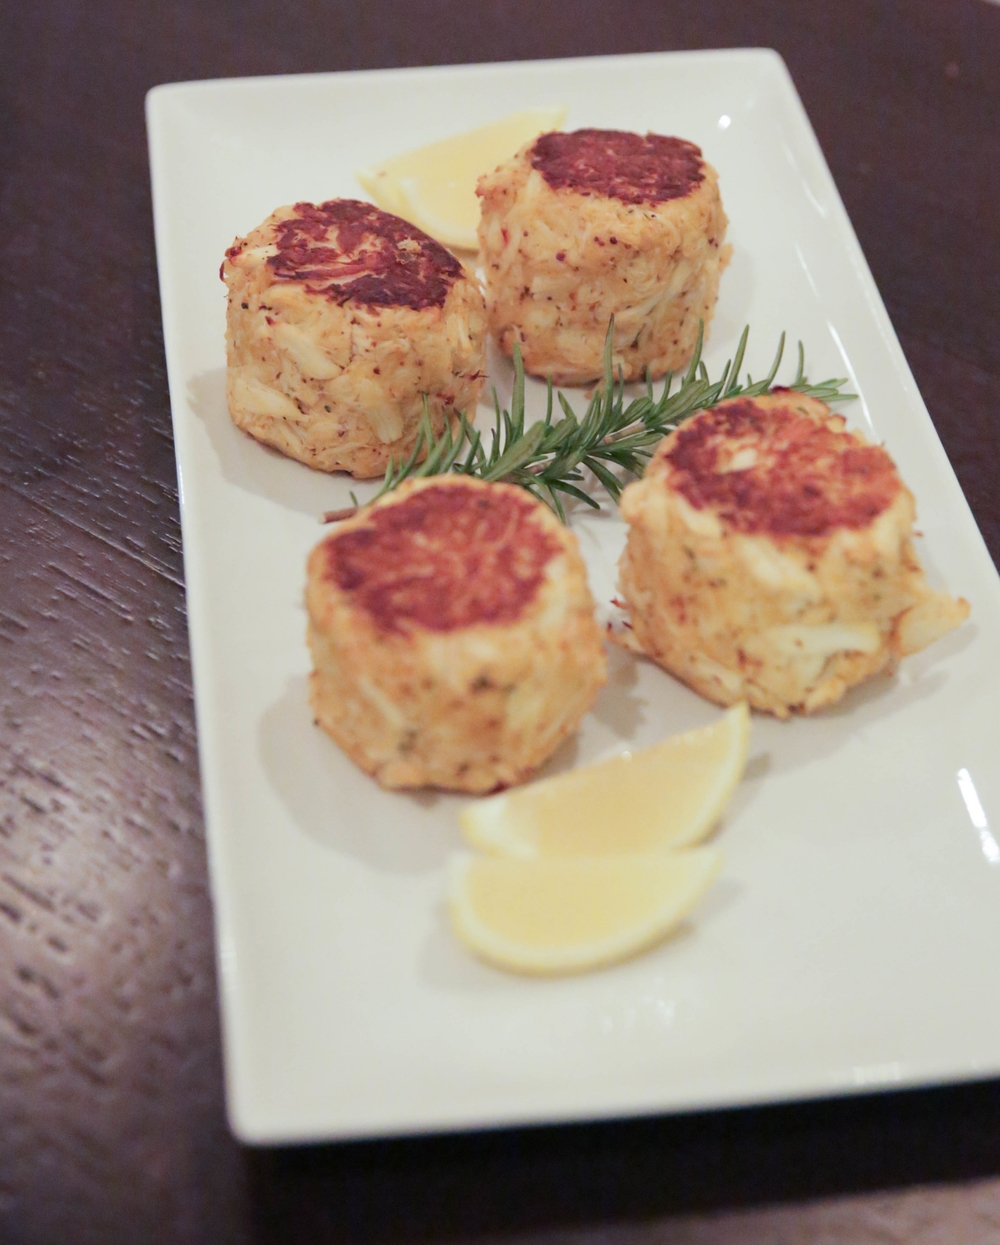 LaurenSchwaiger-Life-Style-Blog-Clean-Catch-Charlotte-NC-Crabcakes.jpg